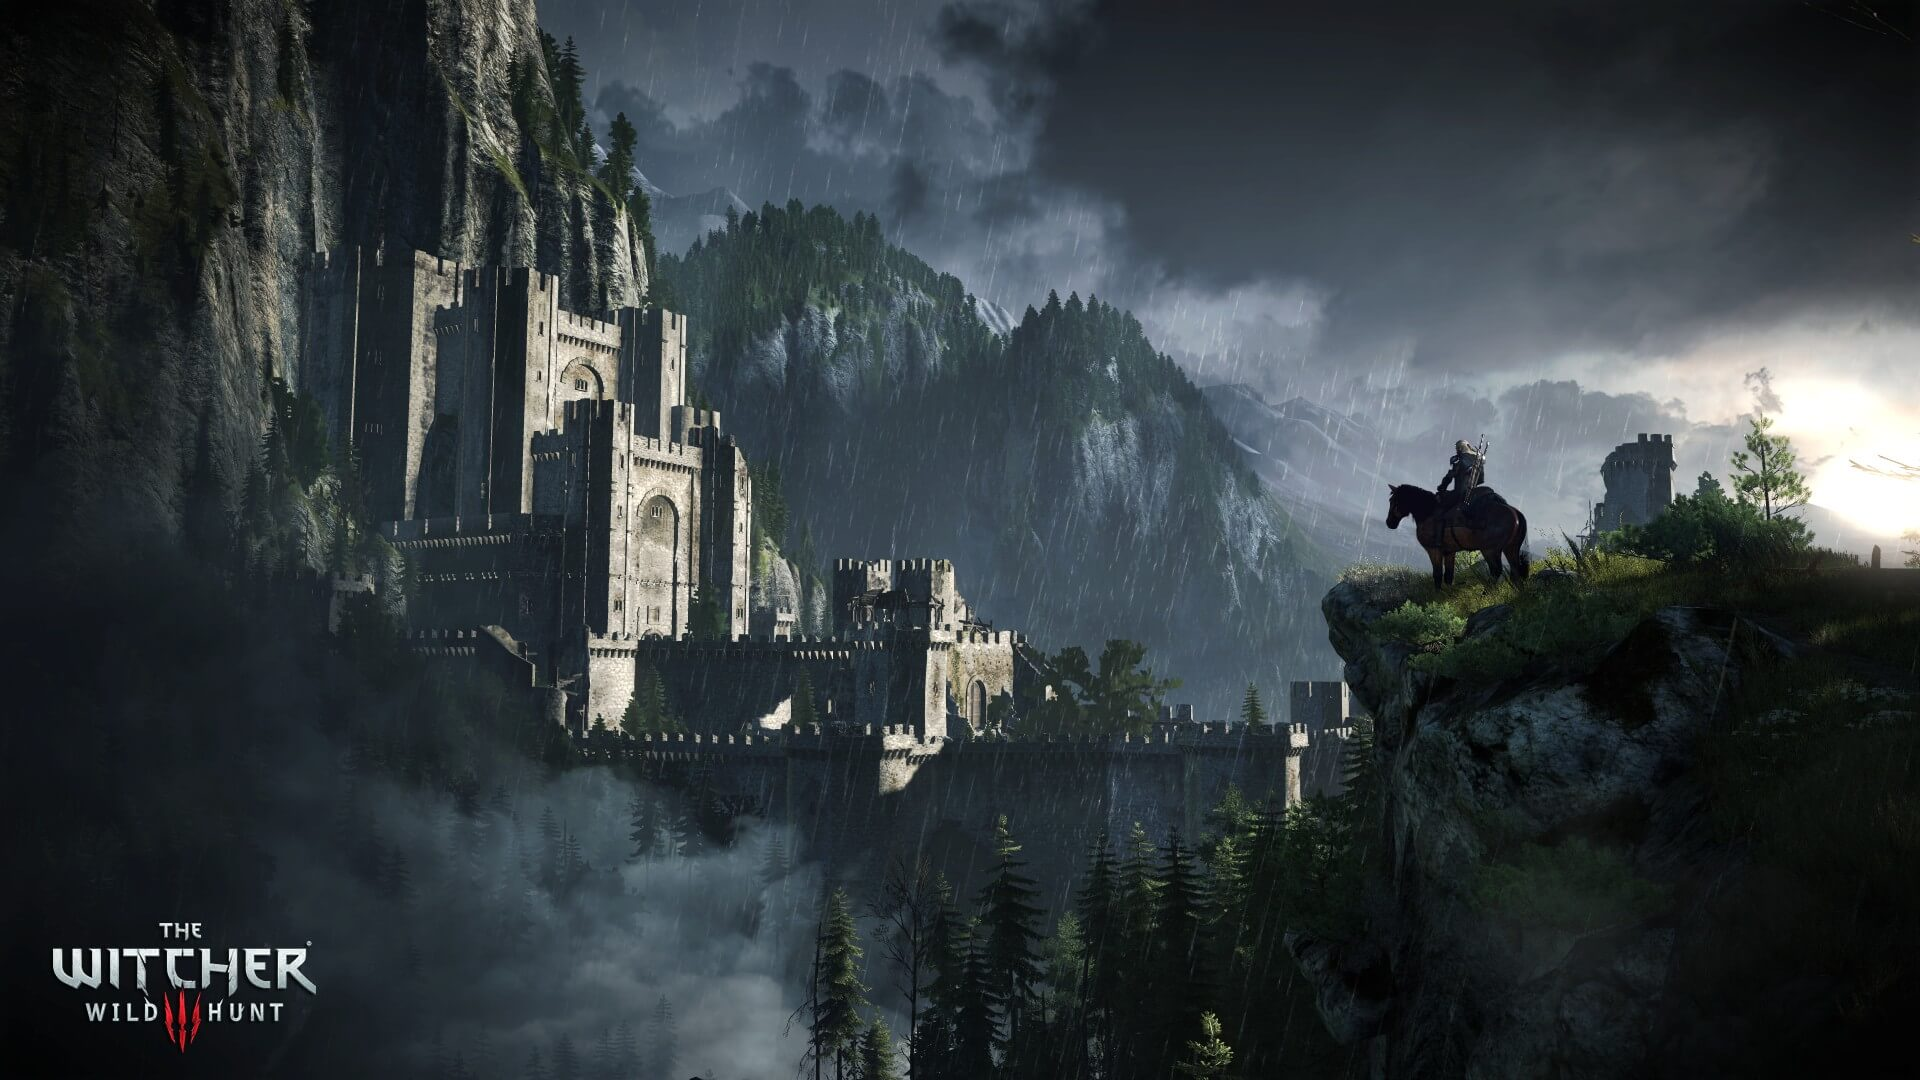 The Witcher 3: Wild Hunt Castle in the Forest Environment Screenshot